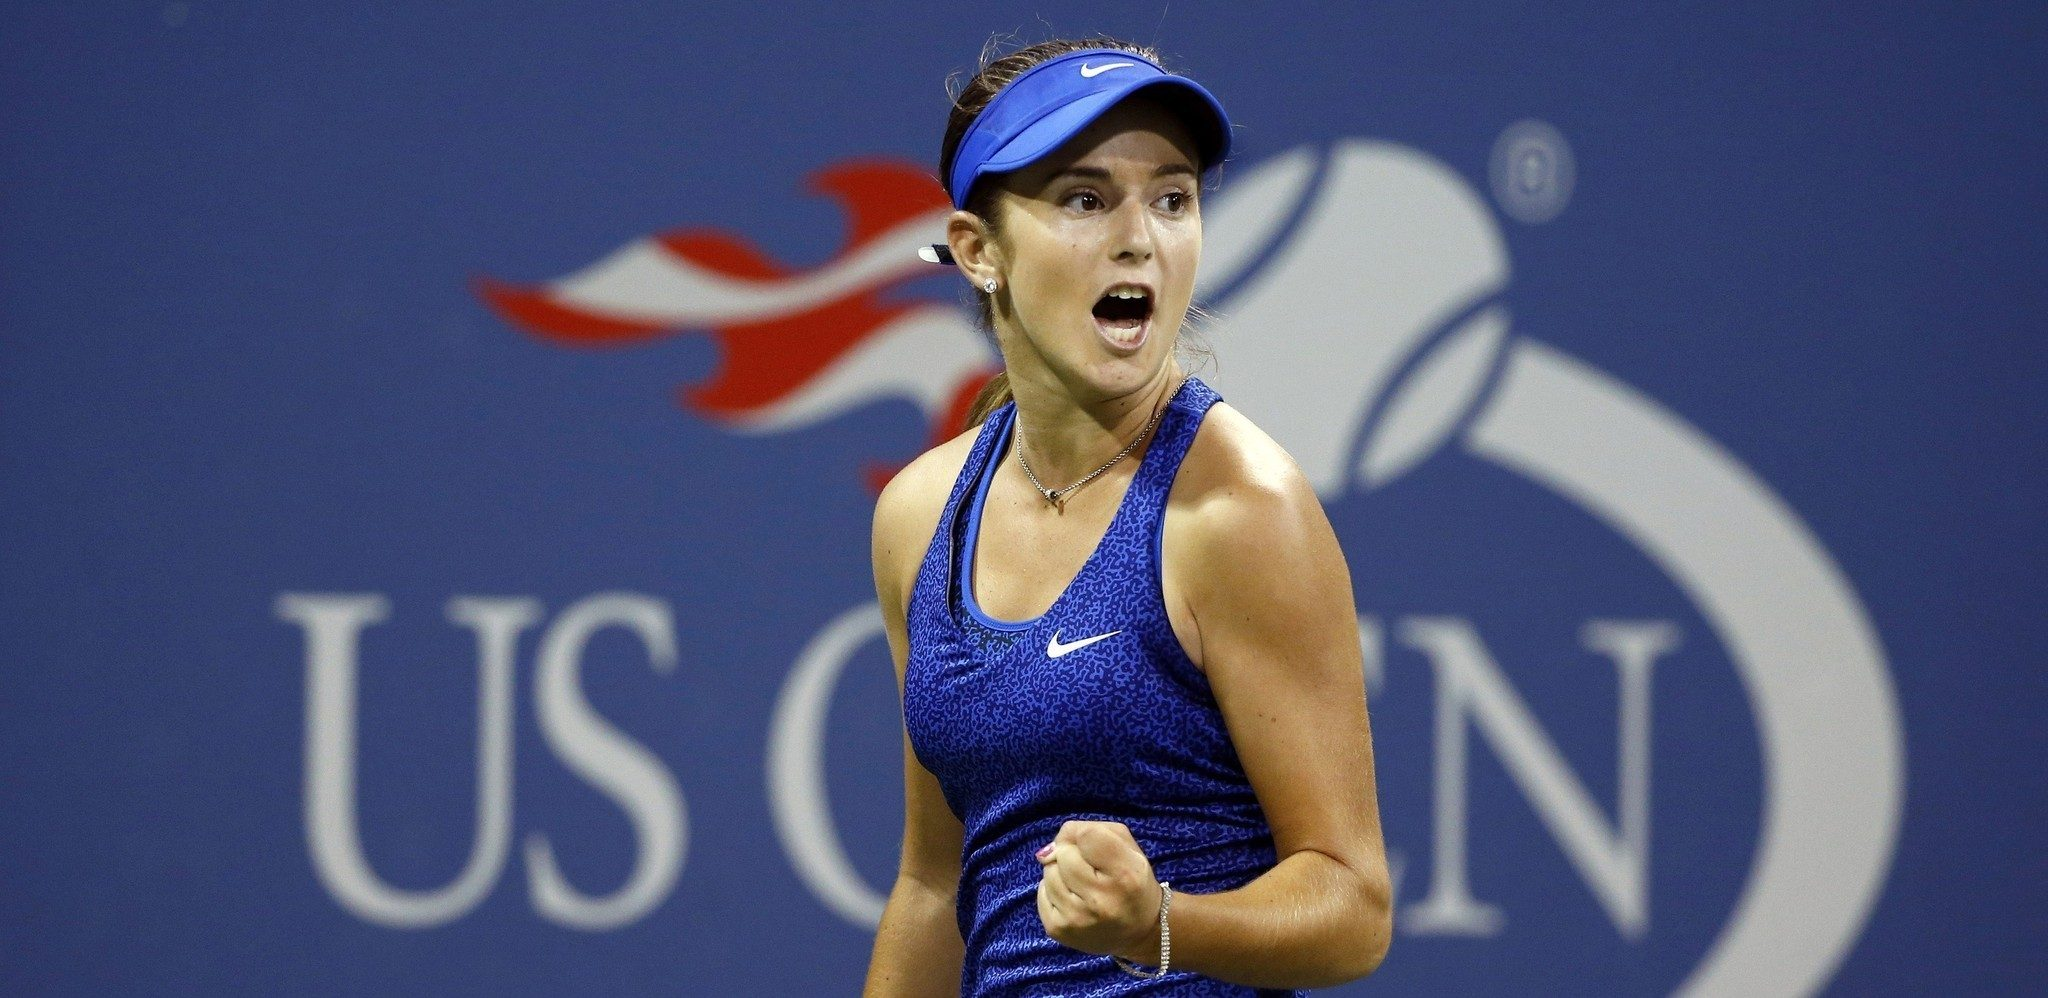 US Open Phenom CiCi Bellis Turns Pro, Signs With IMG